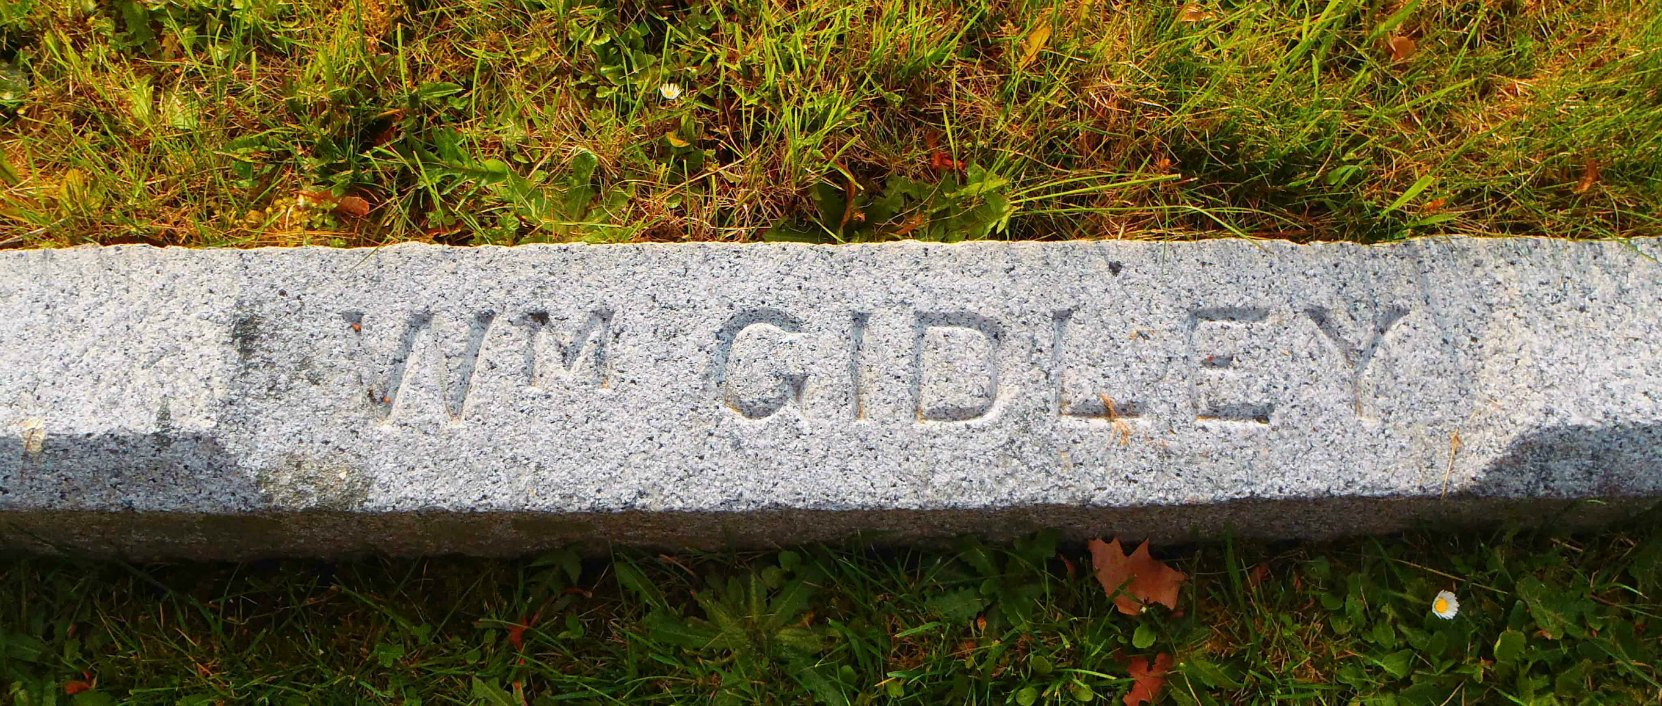 Inscription on William Gidley grave, Ross Bay Cemetery, Victoria, B.C.